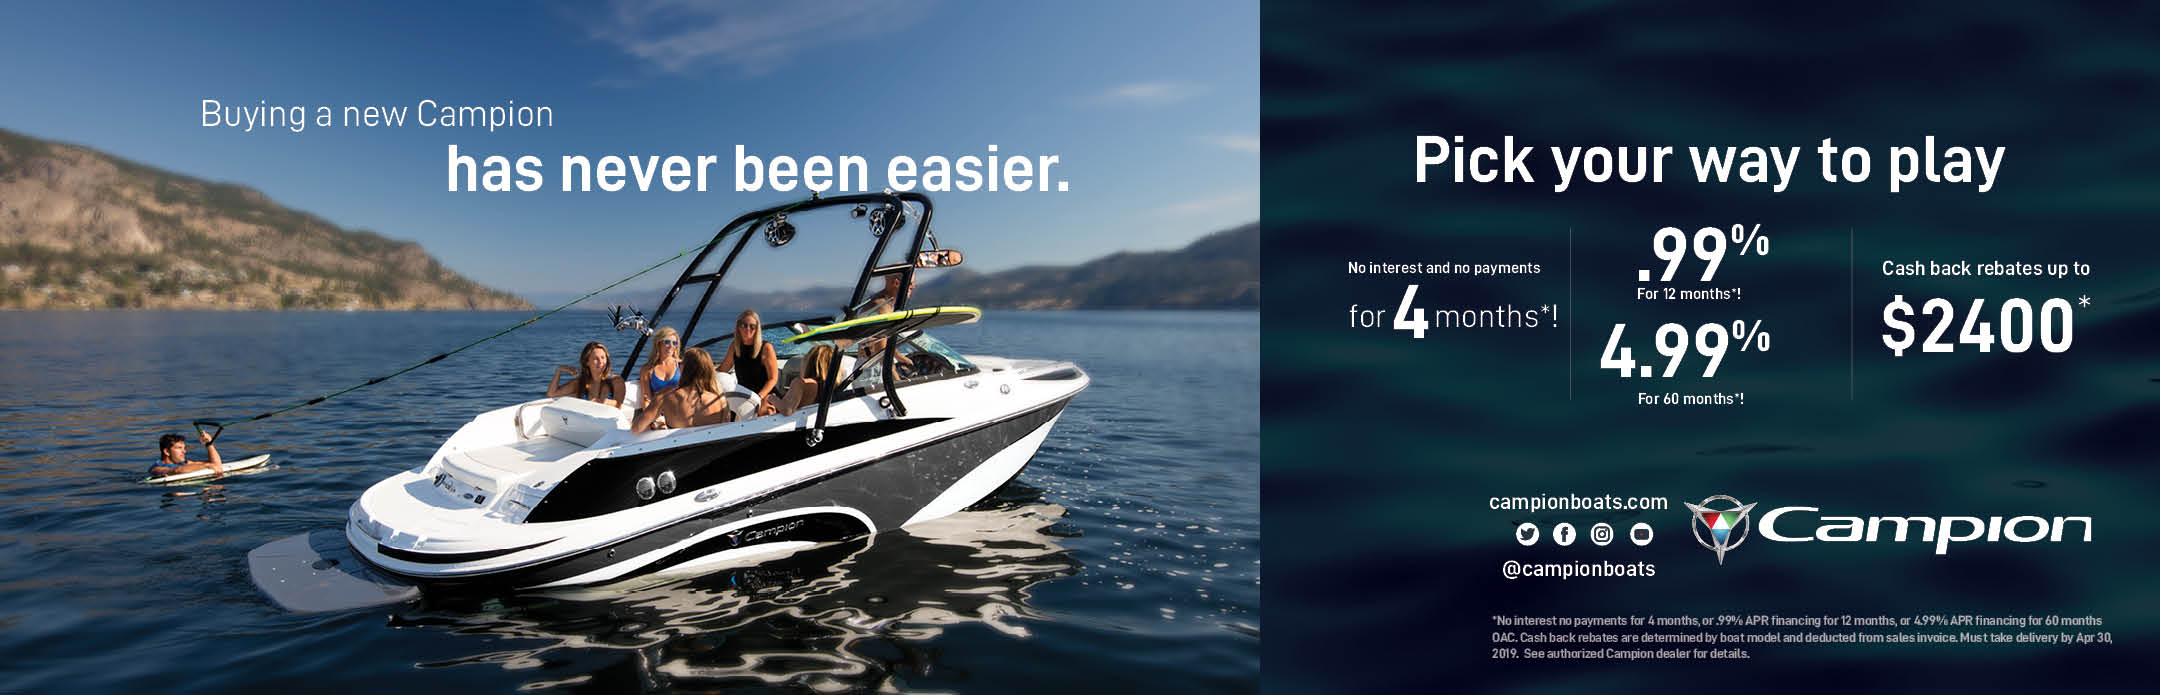 Campion Boats Pre-Season Sale March April 2019